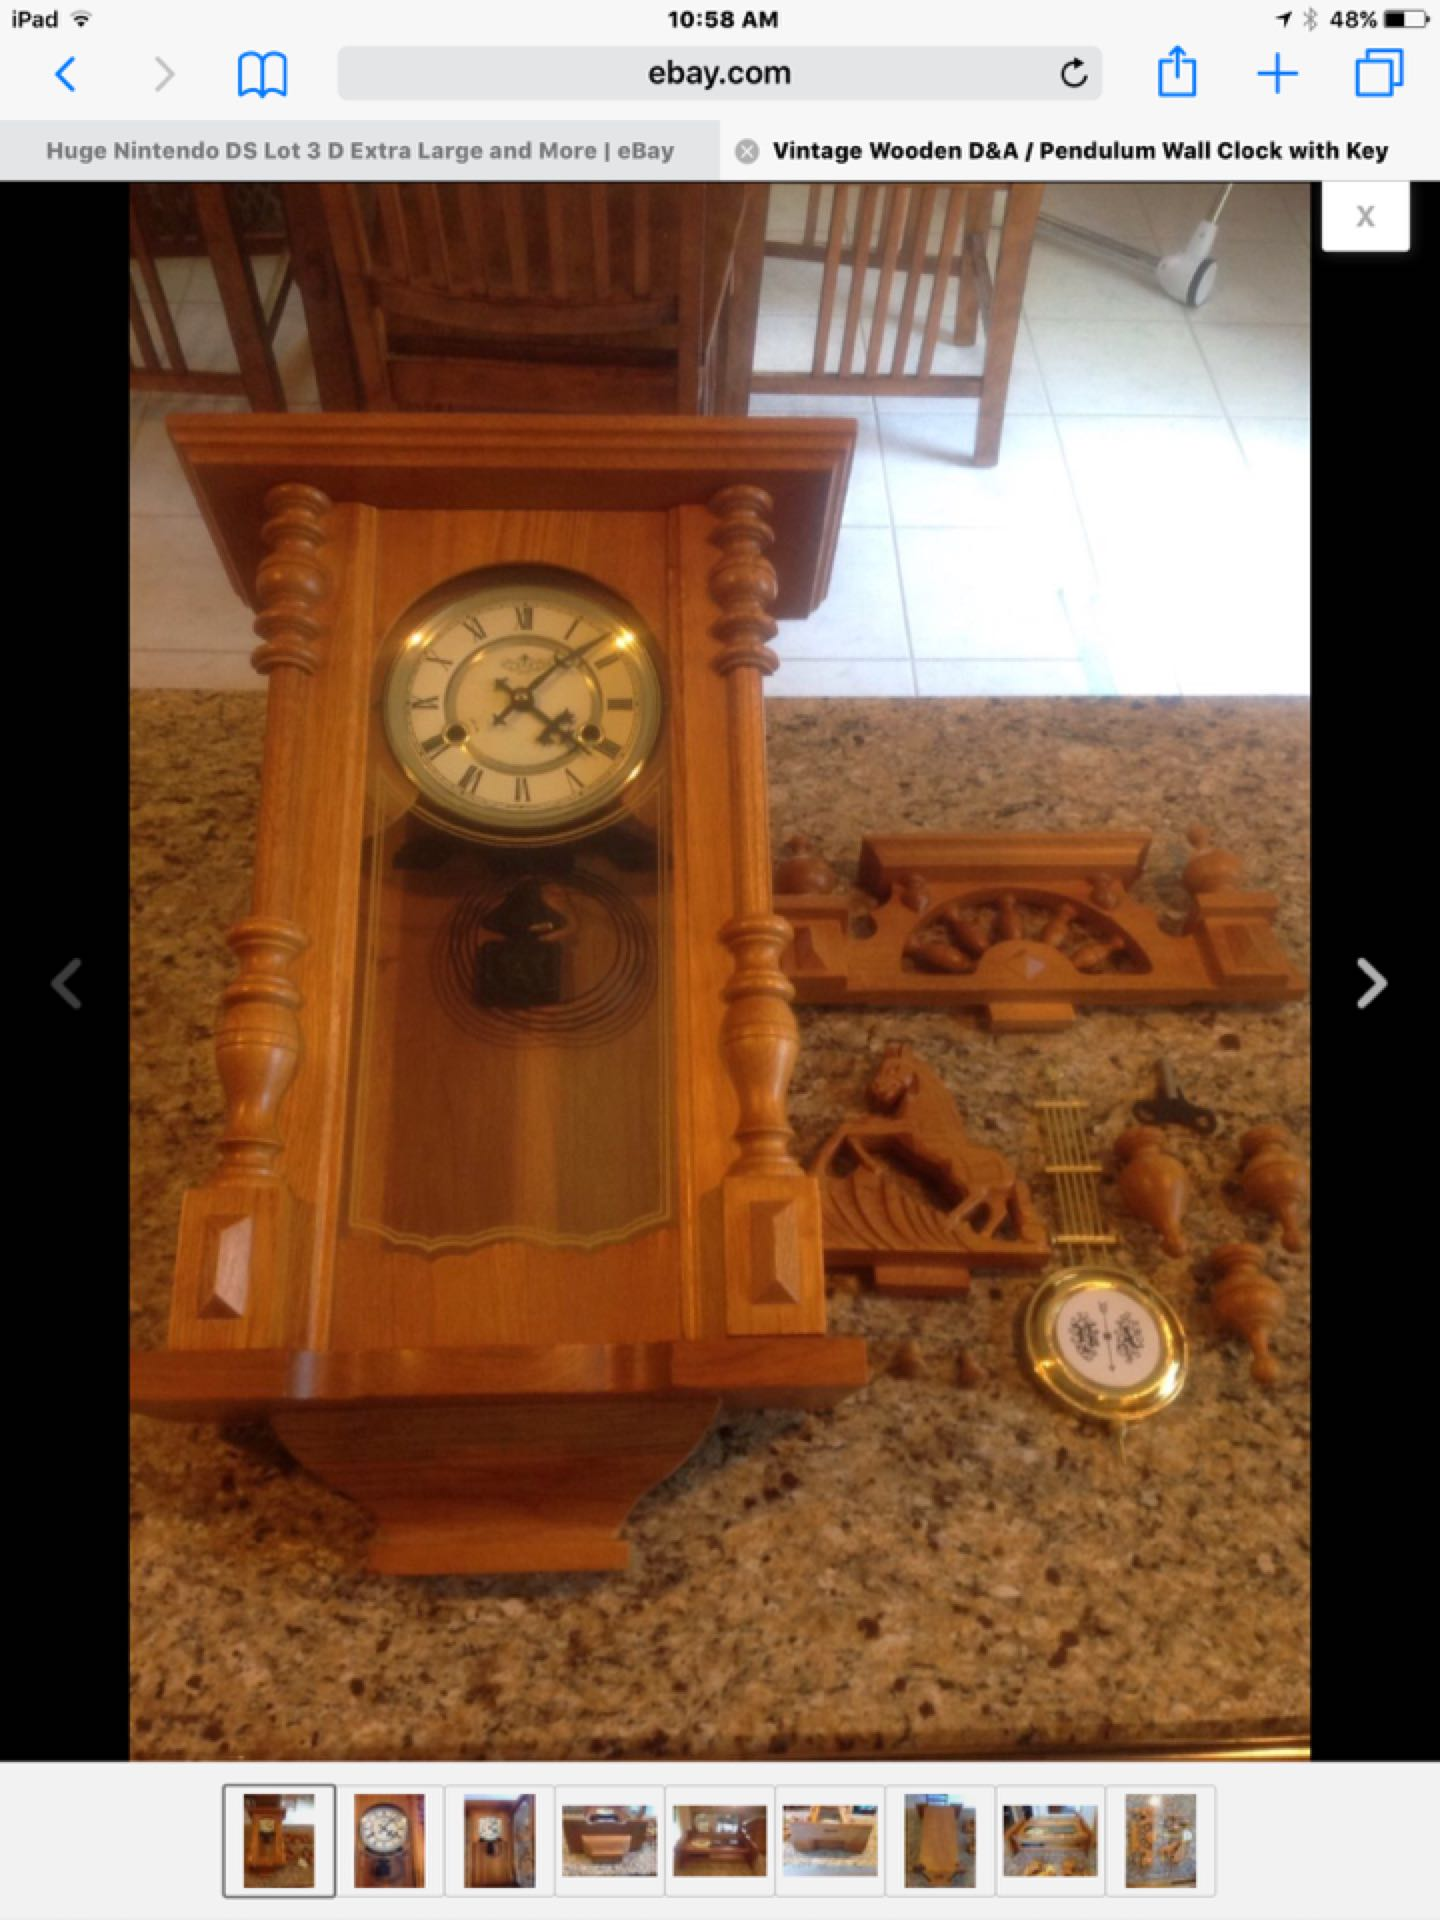 Vintage Wooden D&A / Pendulum Wall Clock with Key